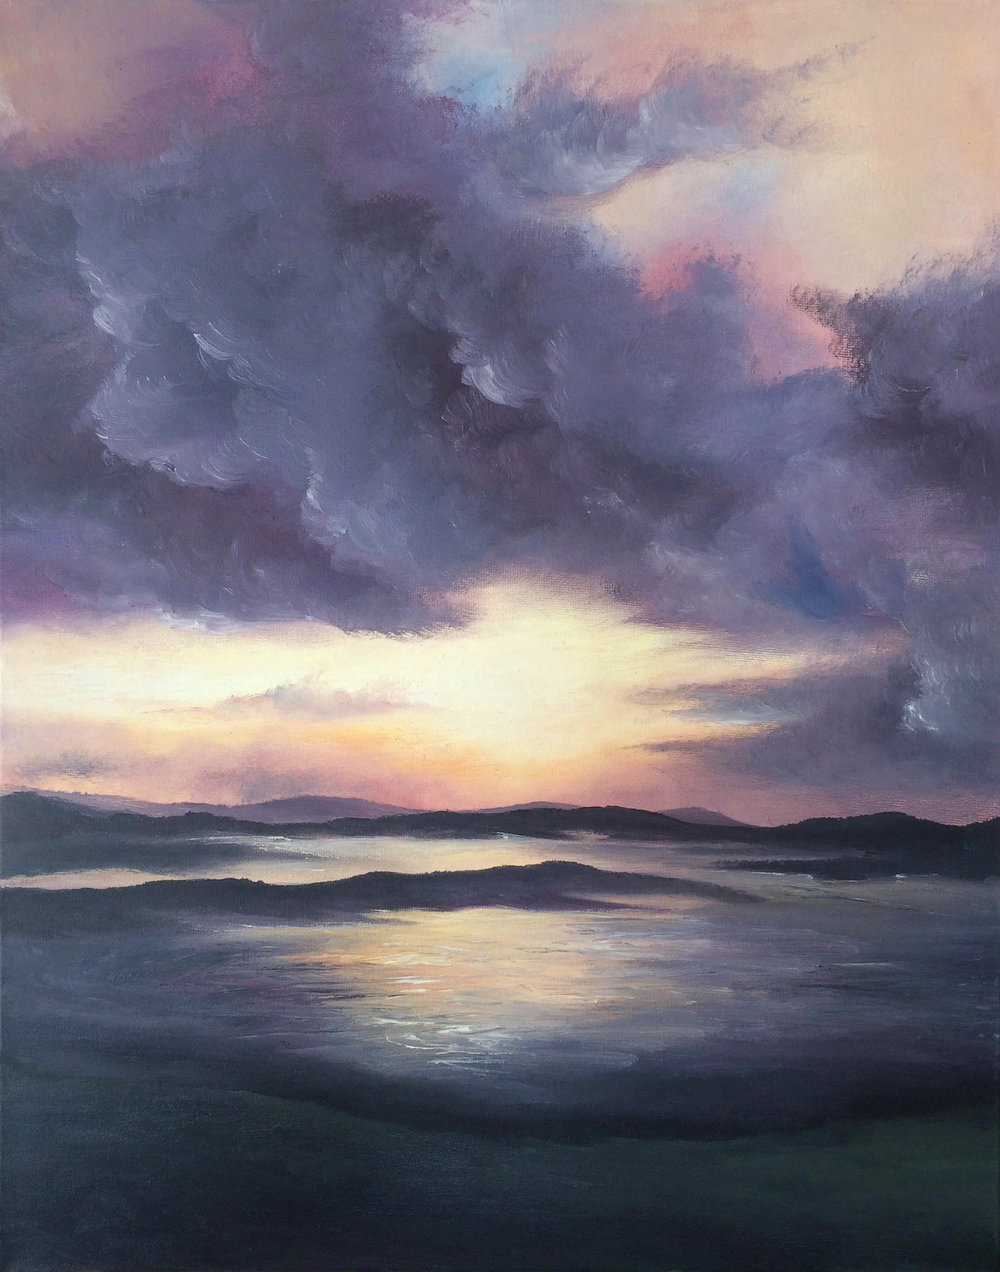 Sunrise on callanish - oil on canvas